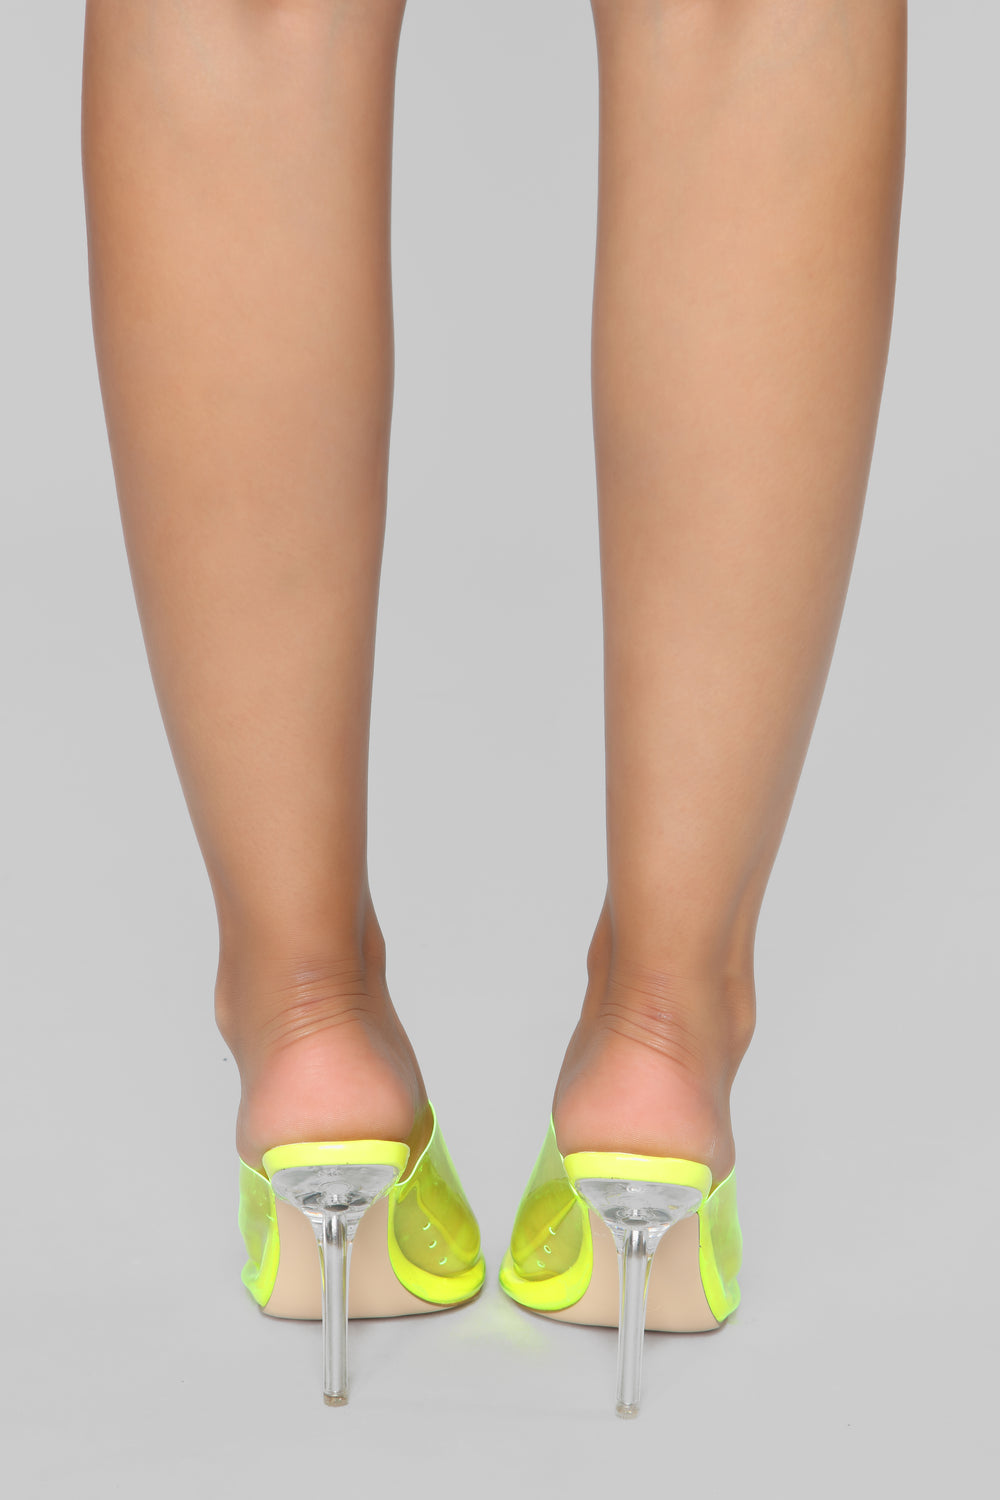 Stop Killing My Vibe Heeled Sandal - Yellow